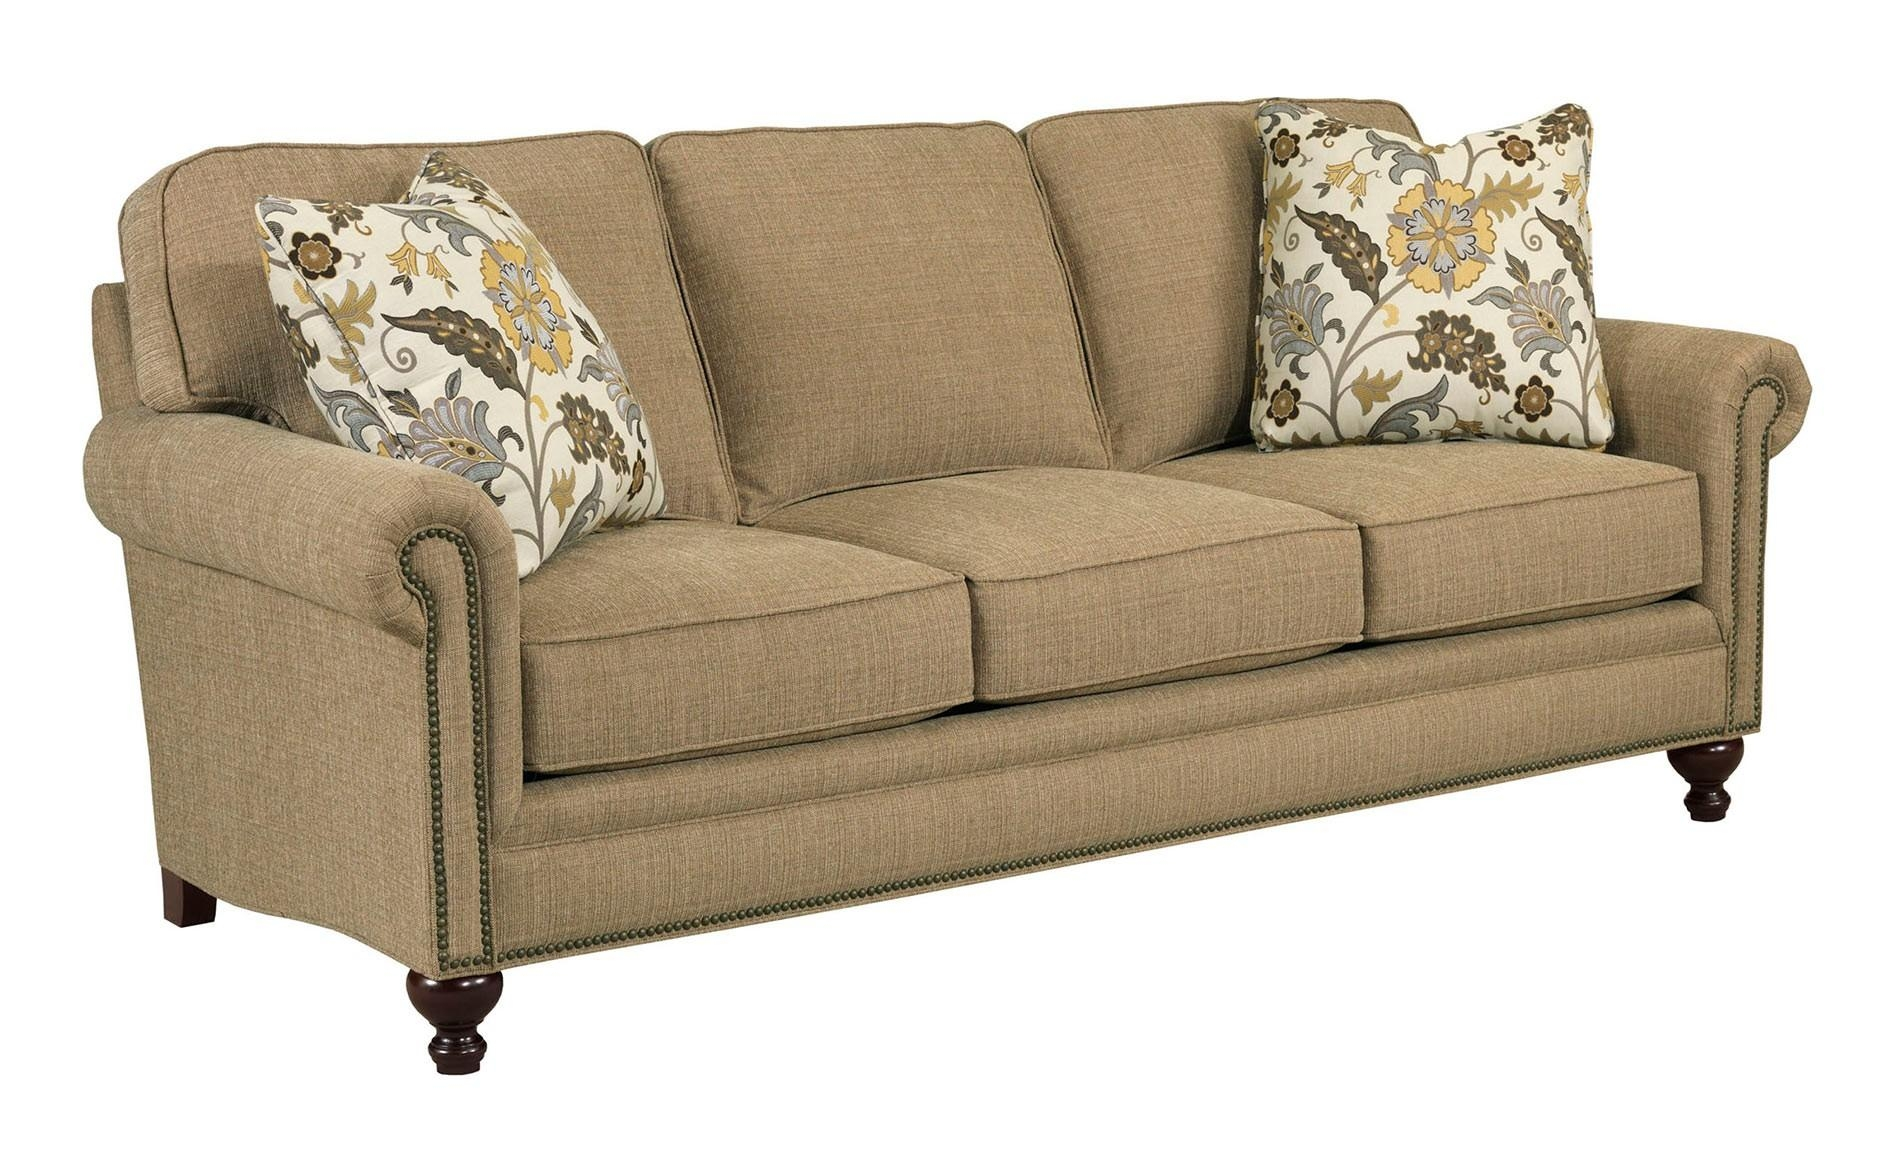 Furniture: Broyhill Bedroom Sets | Broyhill Sofa | Broyhill Dining Inside Broyhill Sofas (Image 16 of 20)